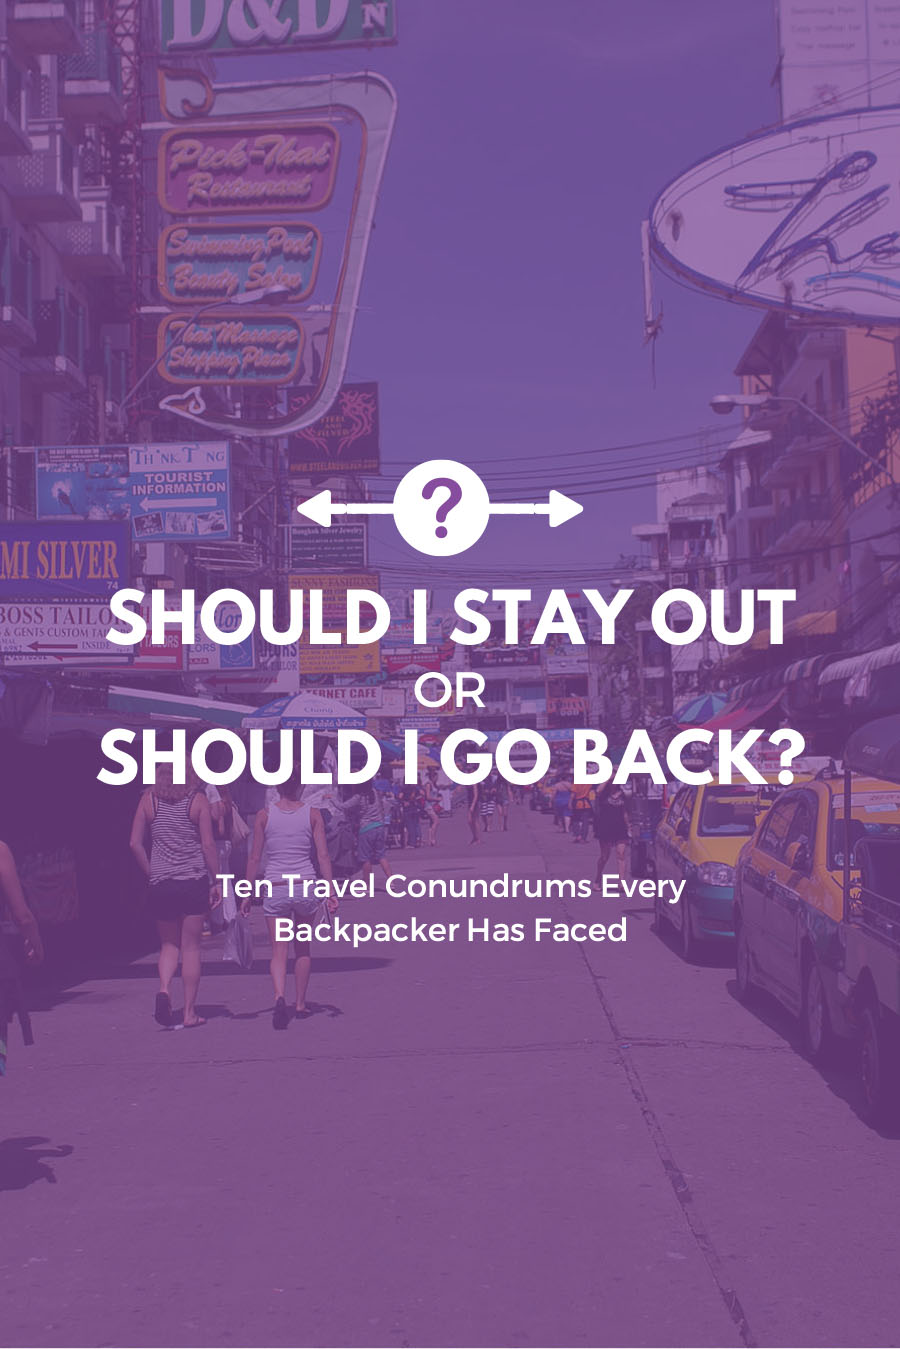 Should I stay out or should I go back? | Ten Travel Conundrums Every Backpacker Has Faced